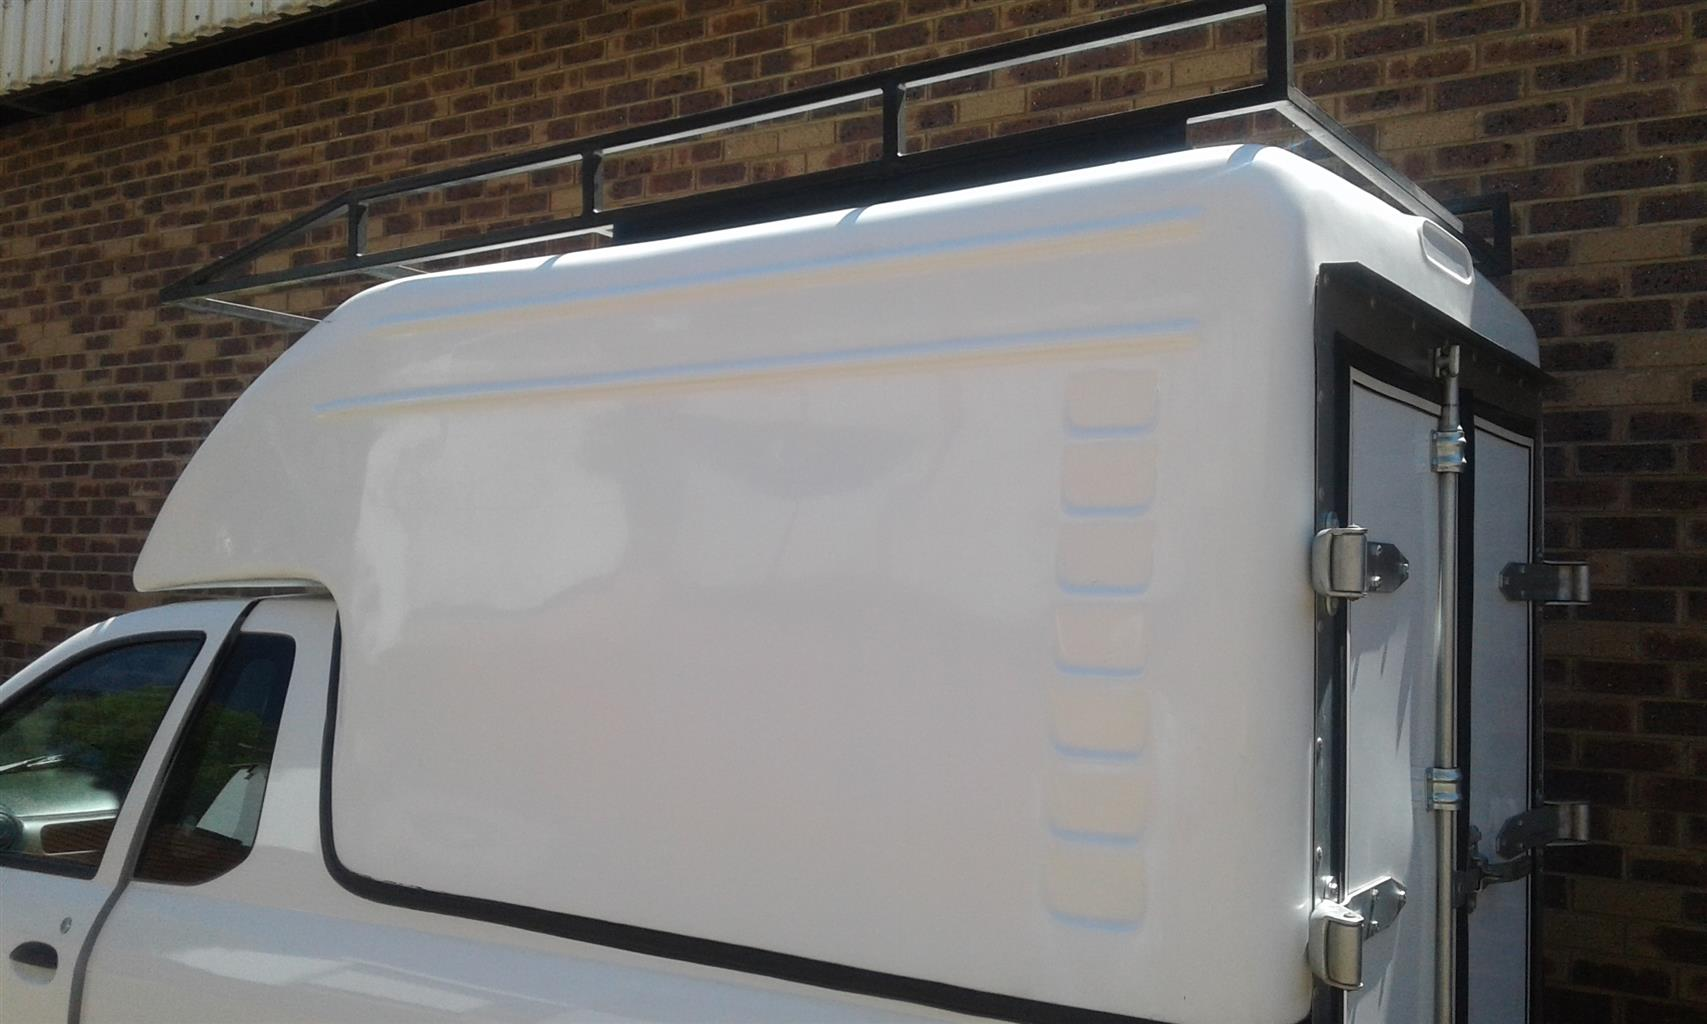 NP200 Canopy, immaculate conditions